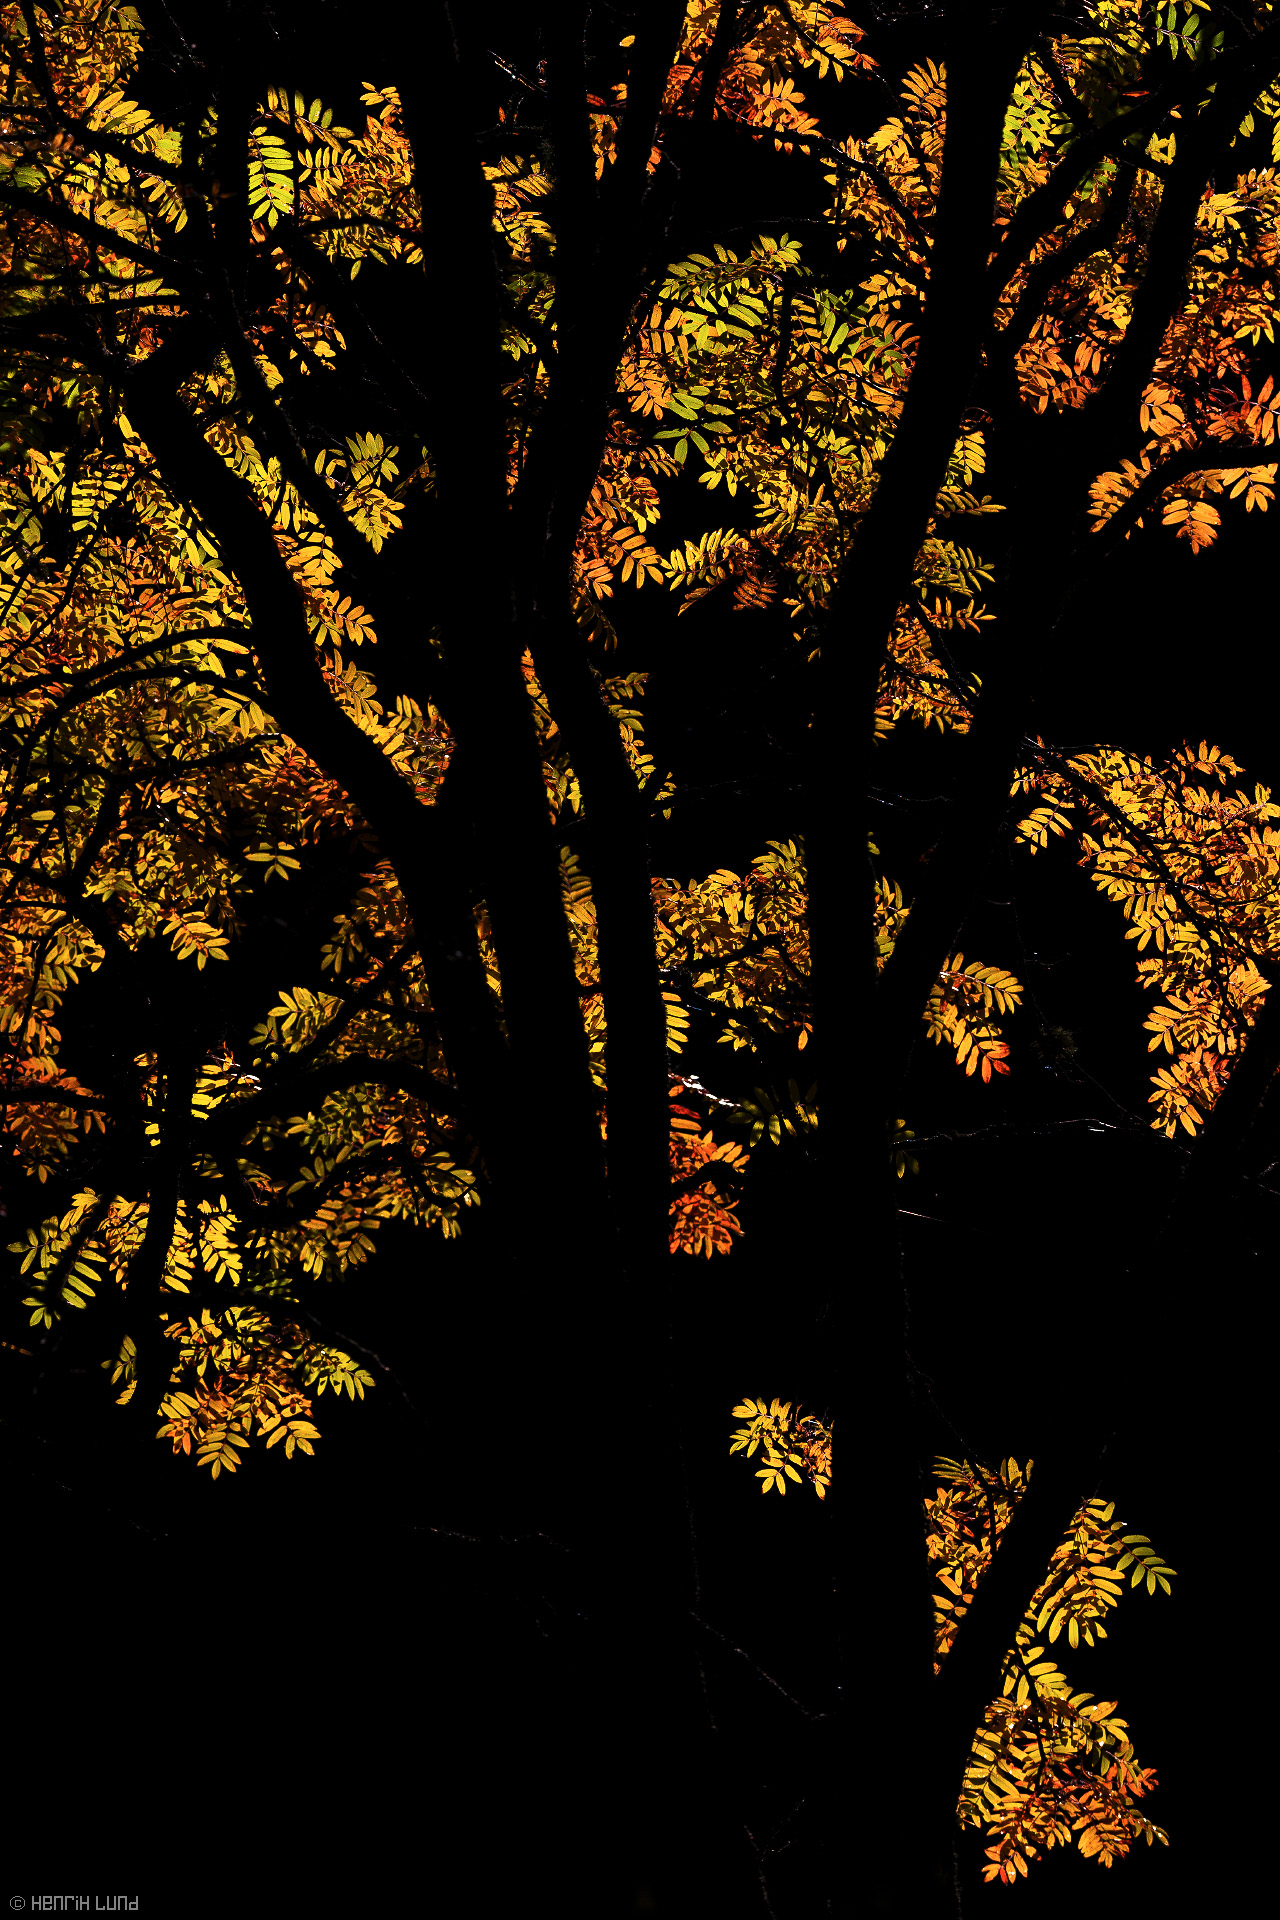 An european rowan backlit in the bricht autumn colors. Lappträsk, Finland, October 2013.